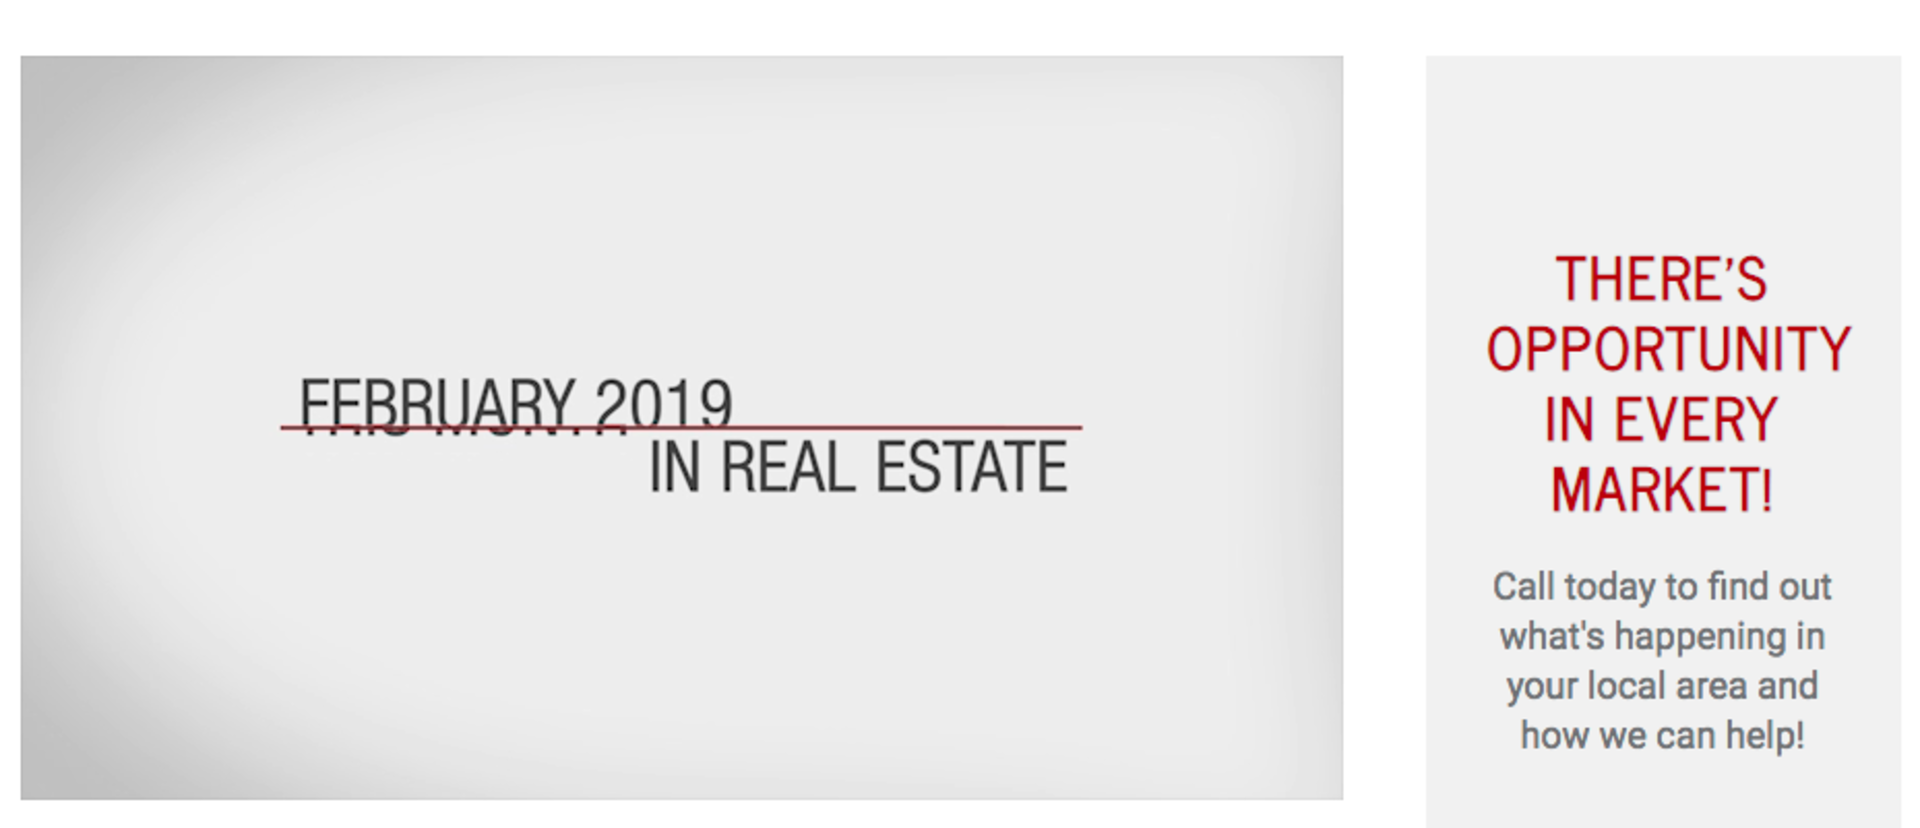 This Month in Real Estate – February 2019